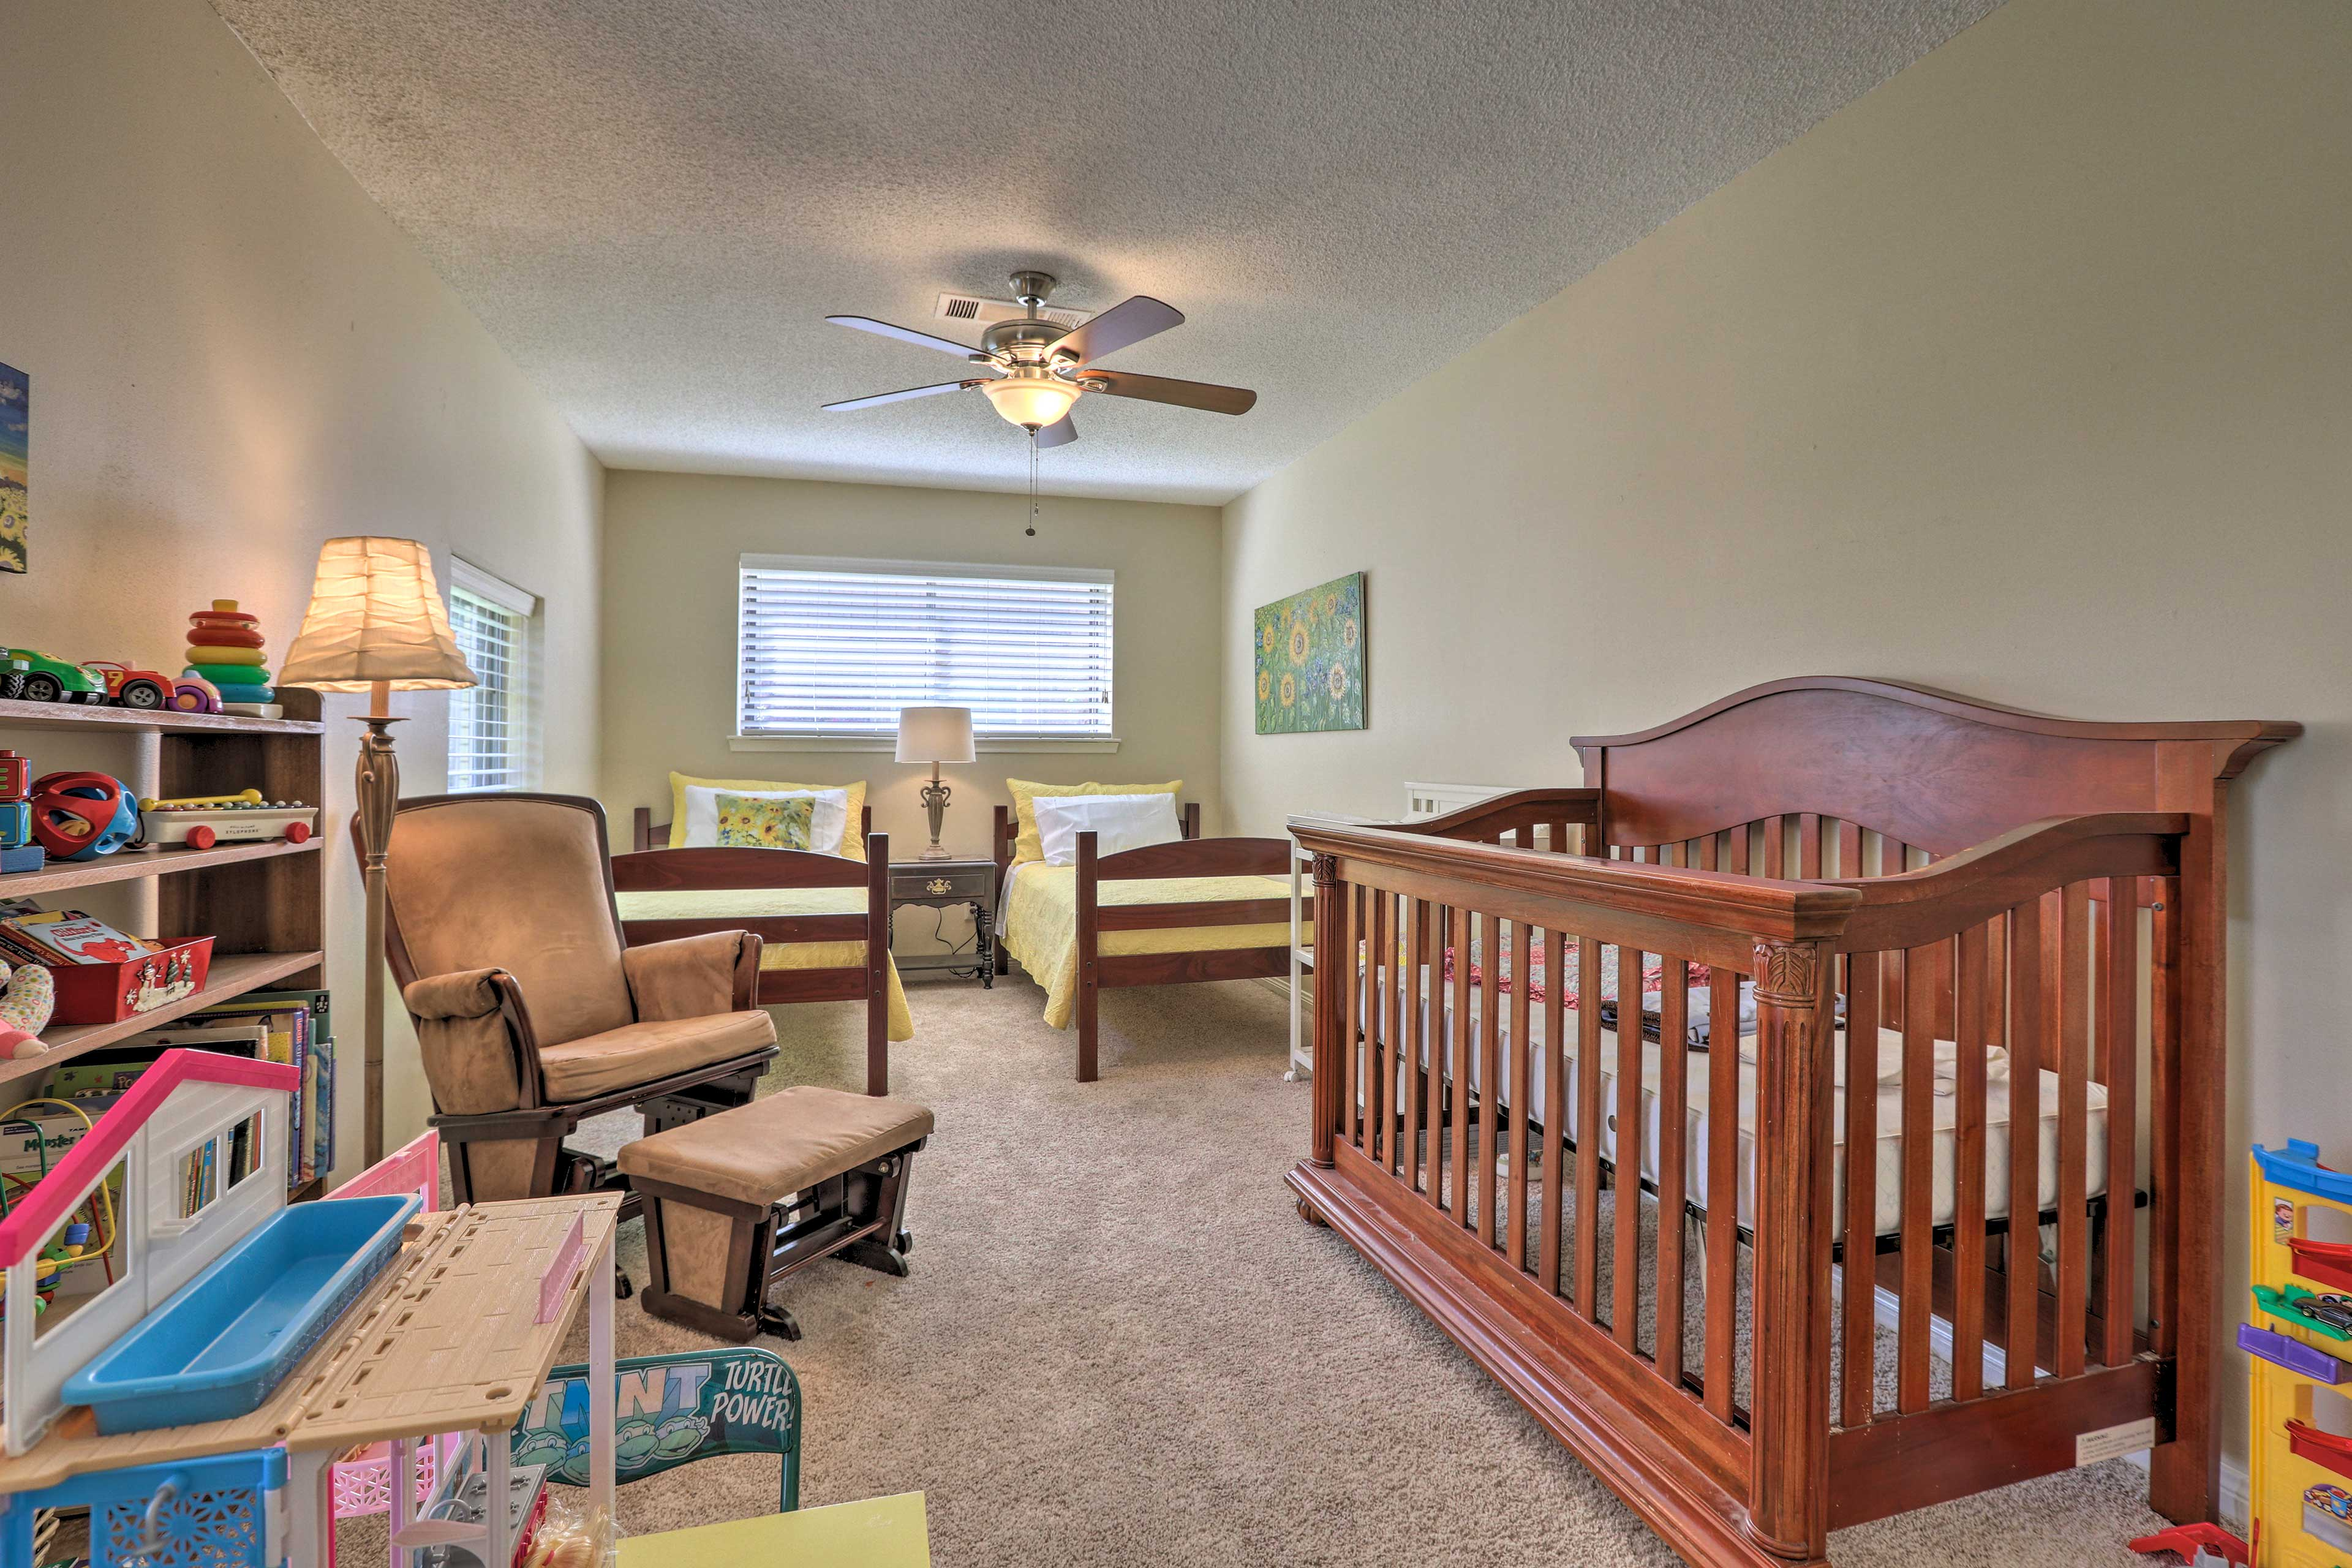 This bedroom features 2 twin beds and a crib.